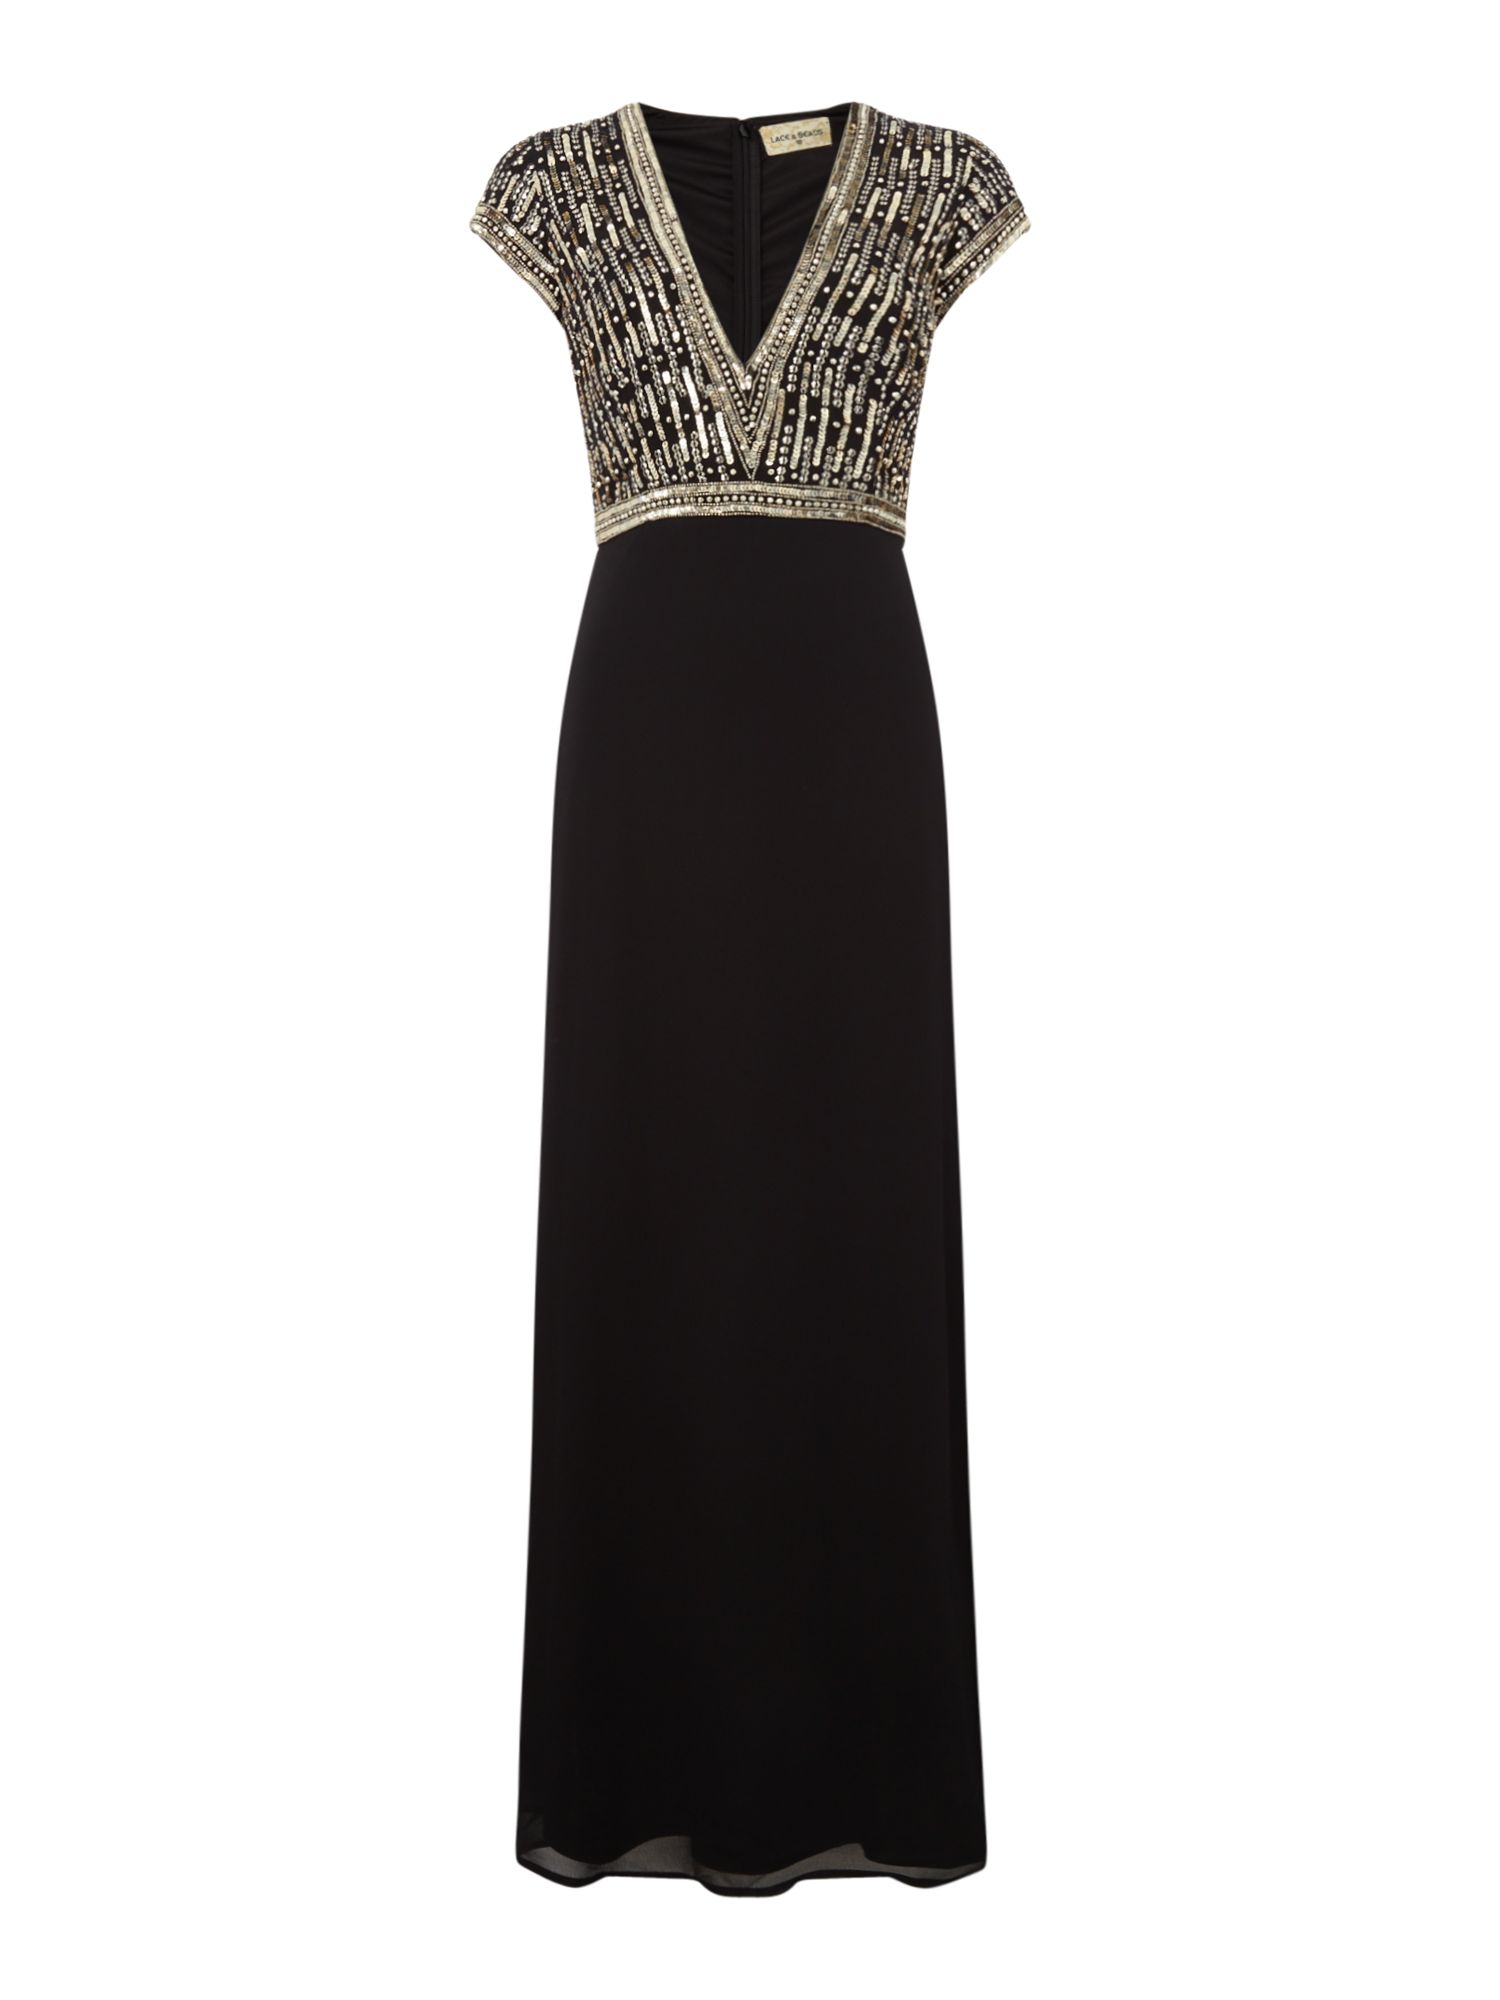 Lace and Beads V neck embellished gown, Black